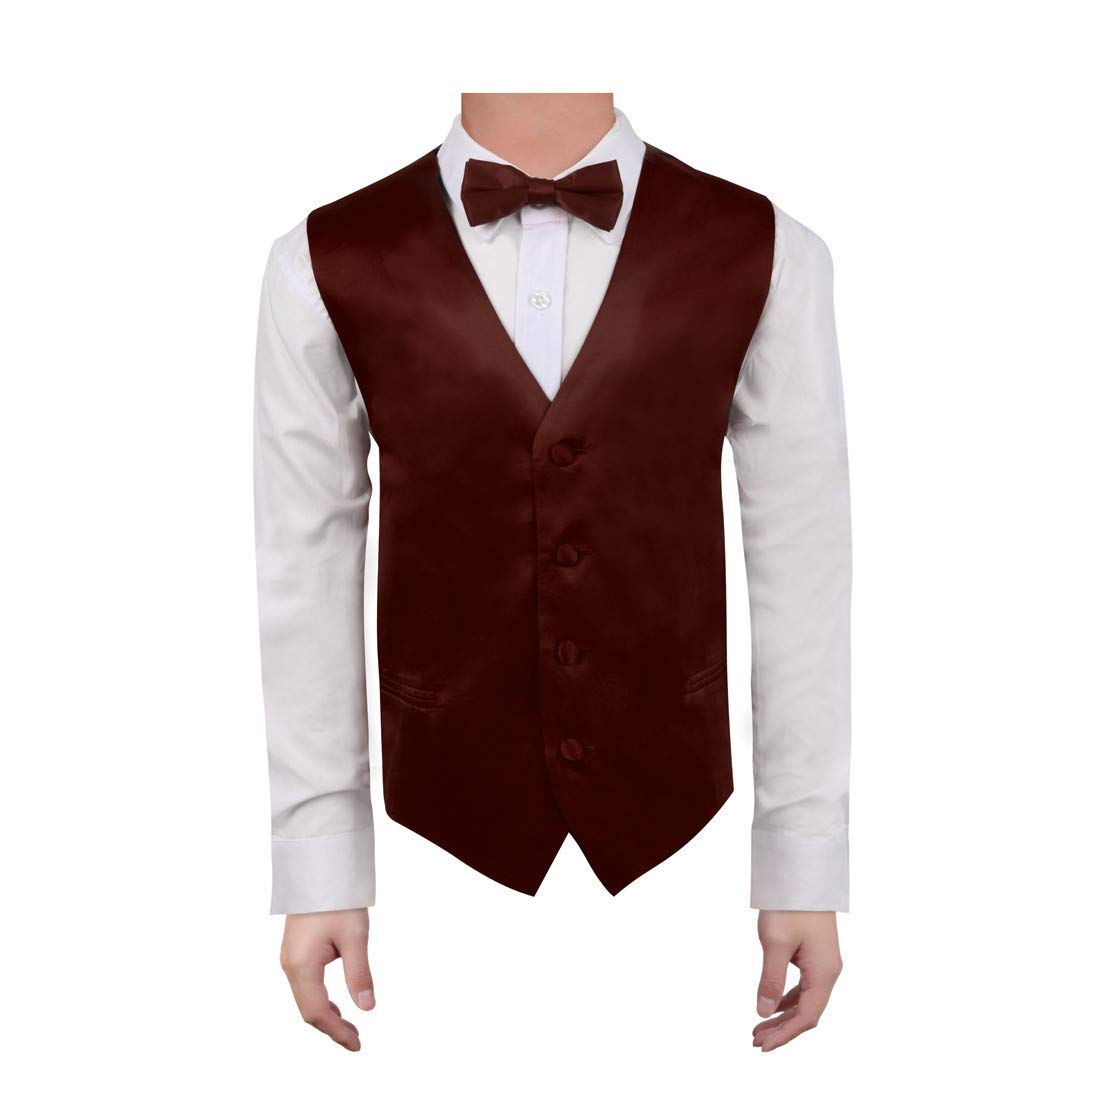 Dan Smith Men's Fashion Multiple Plain Microfiber Boys Vest Bow Tie for Age 6-16 With Free Gift Bags